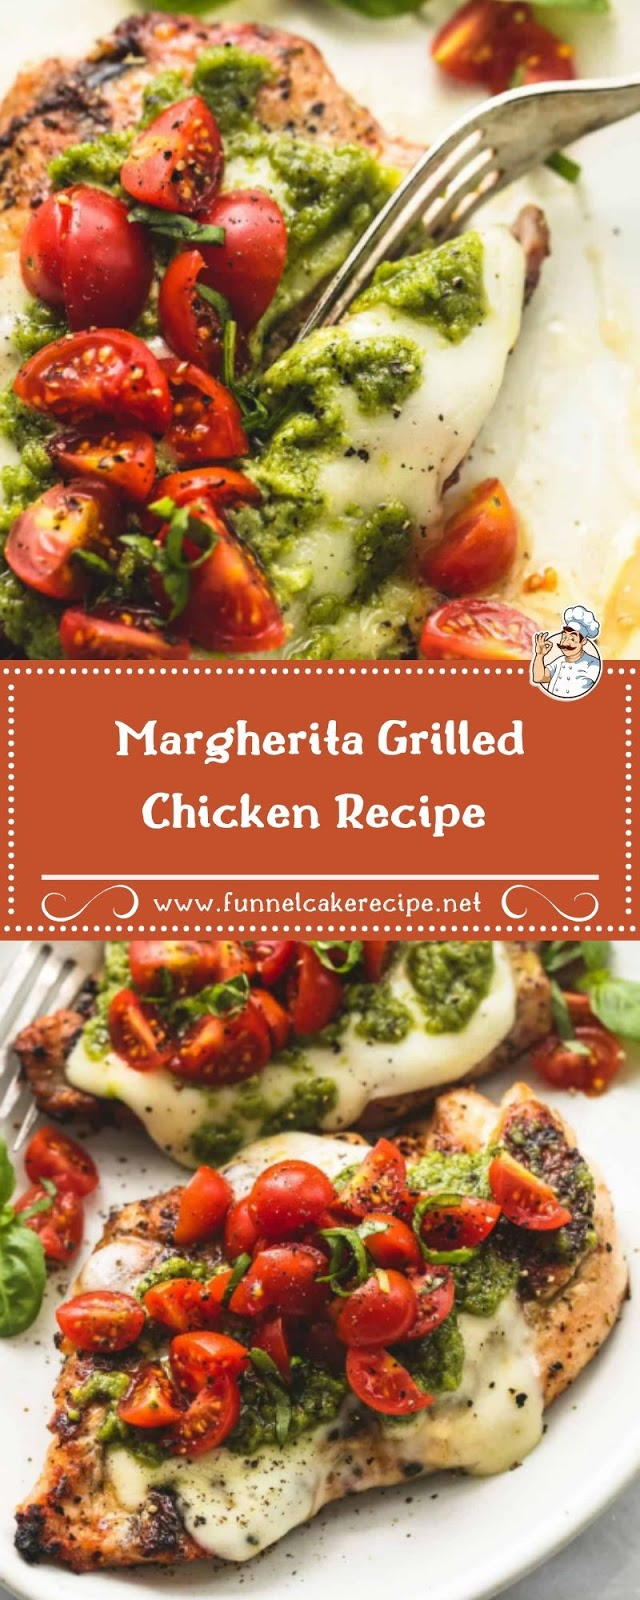 Margherita Grilled Chicken Recipe